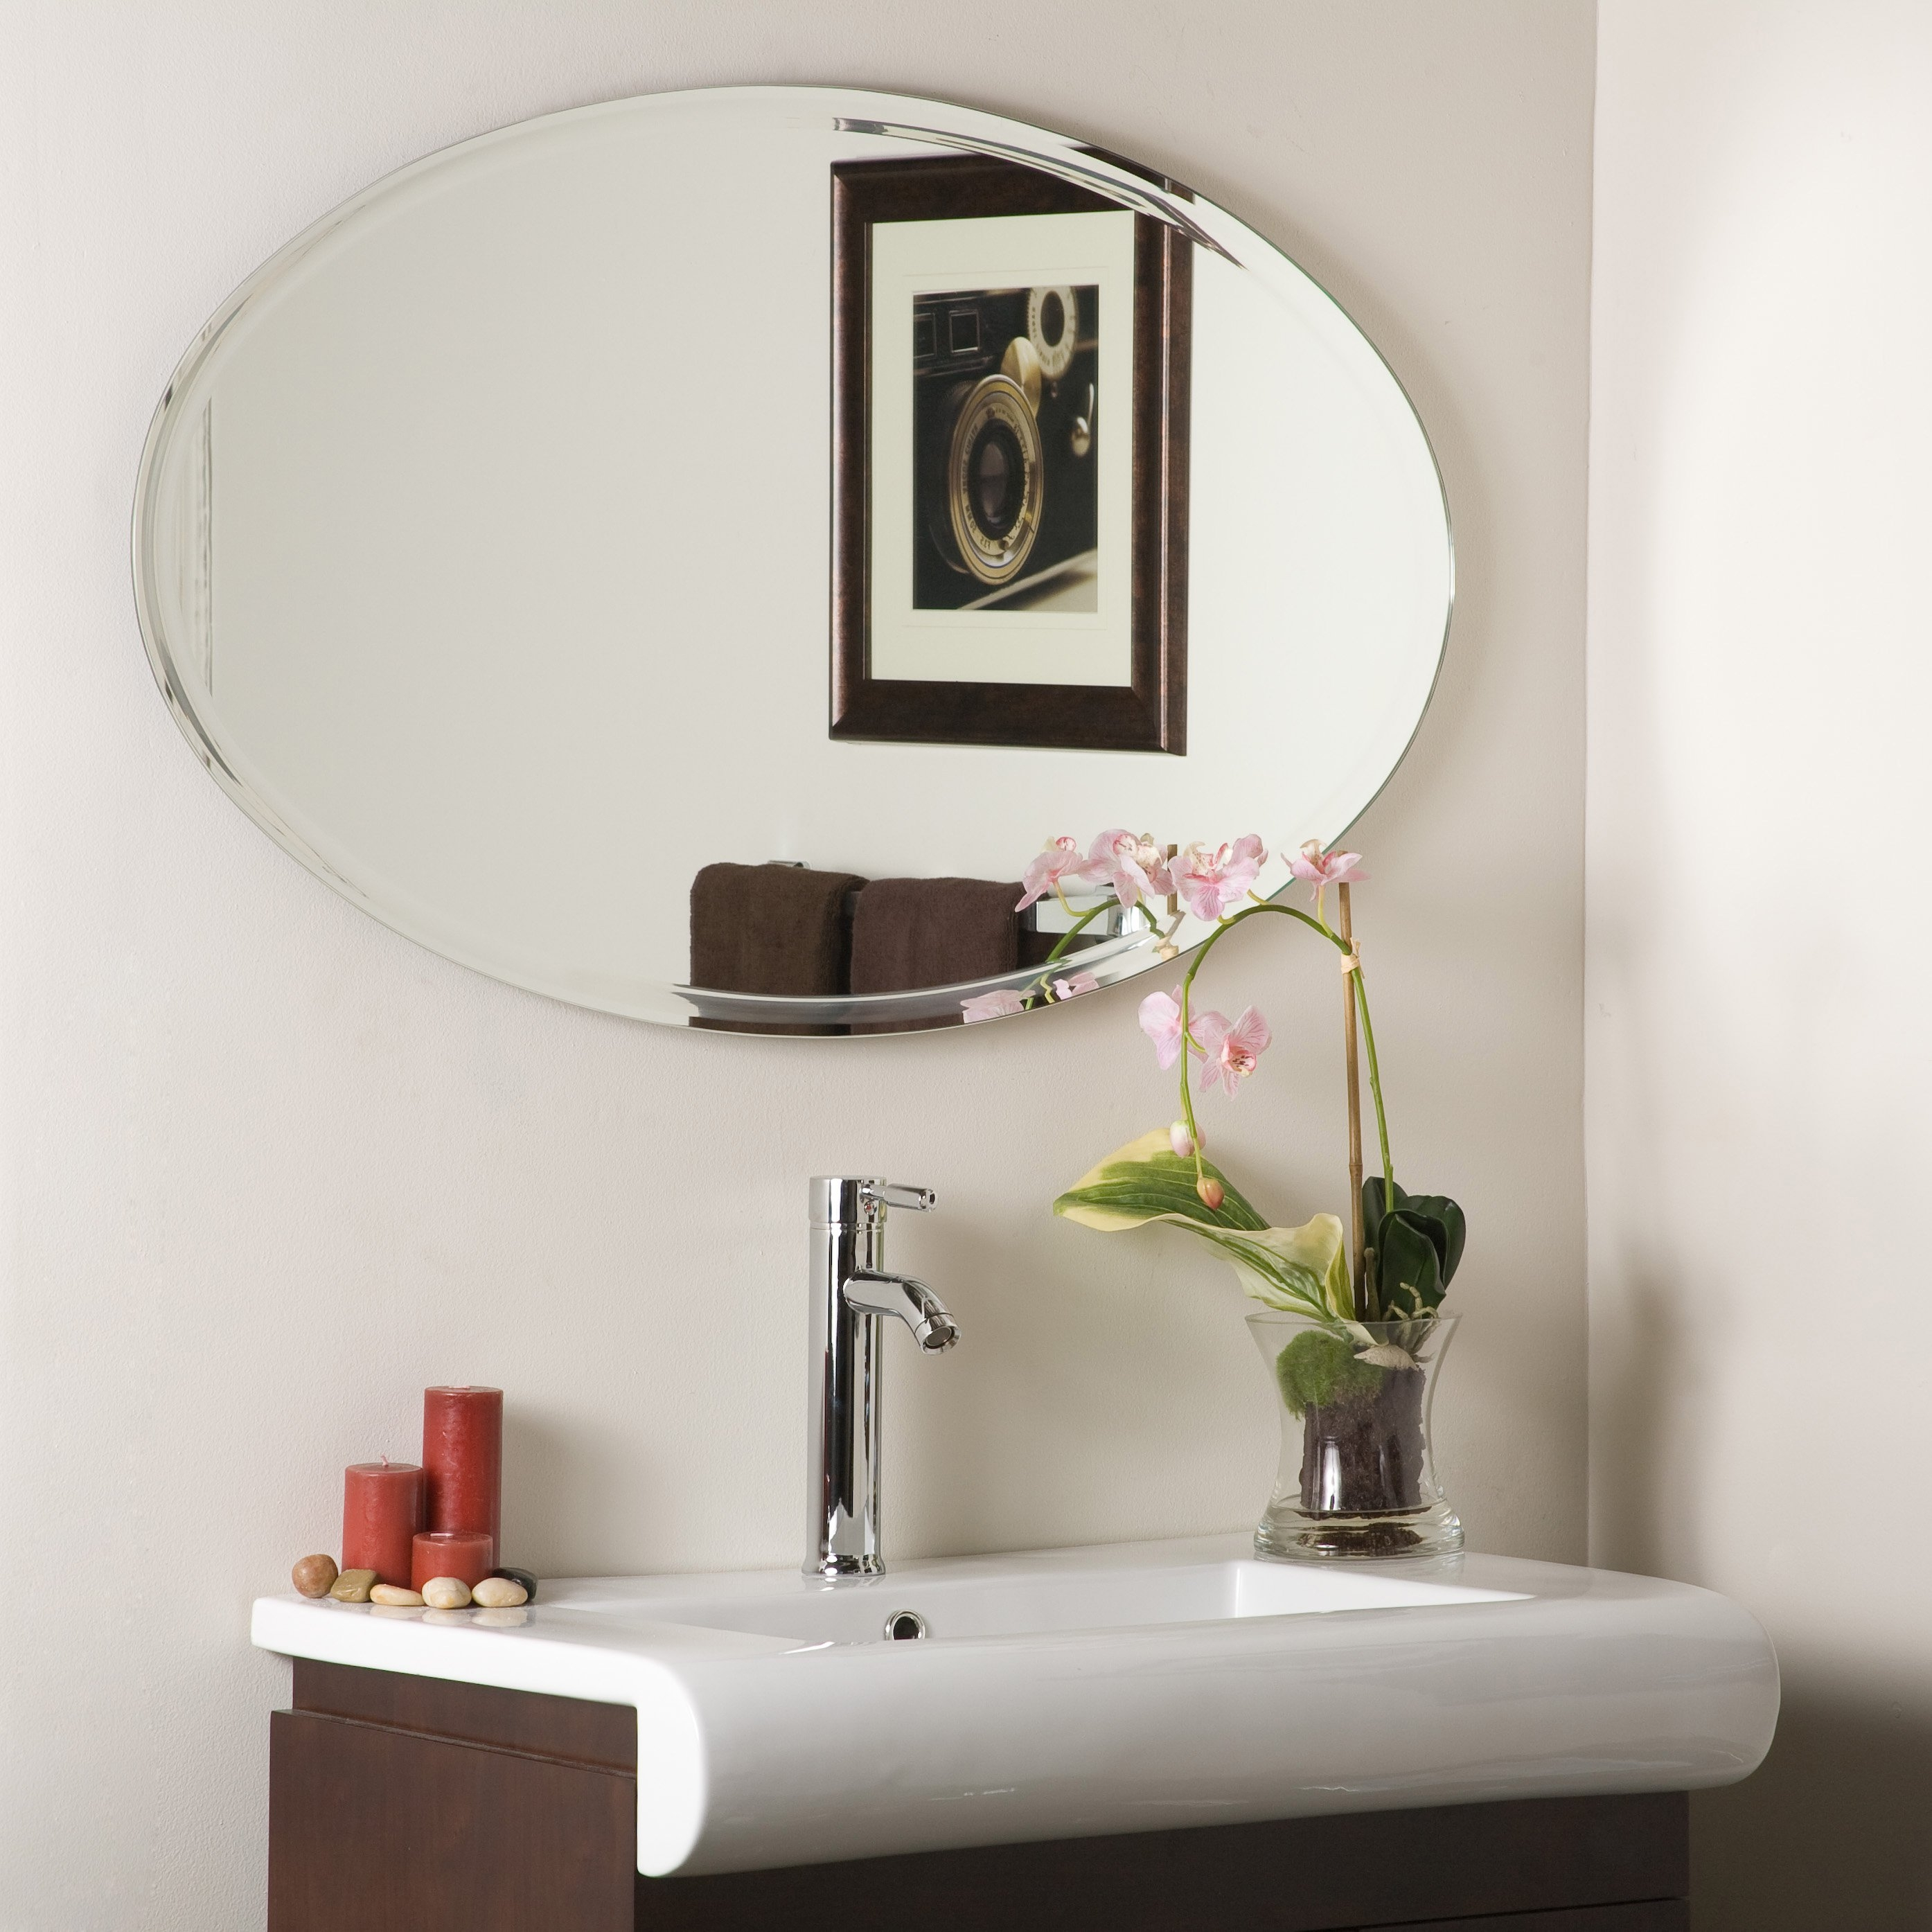 Decor Wonderland Extra Long Oval Wall Mirror Beyond Stores Inside Long Oval Mirror (View 8 of 15)